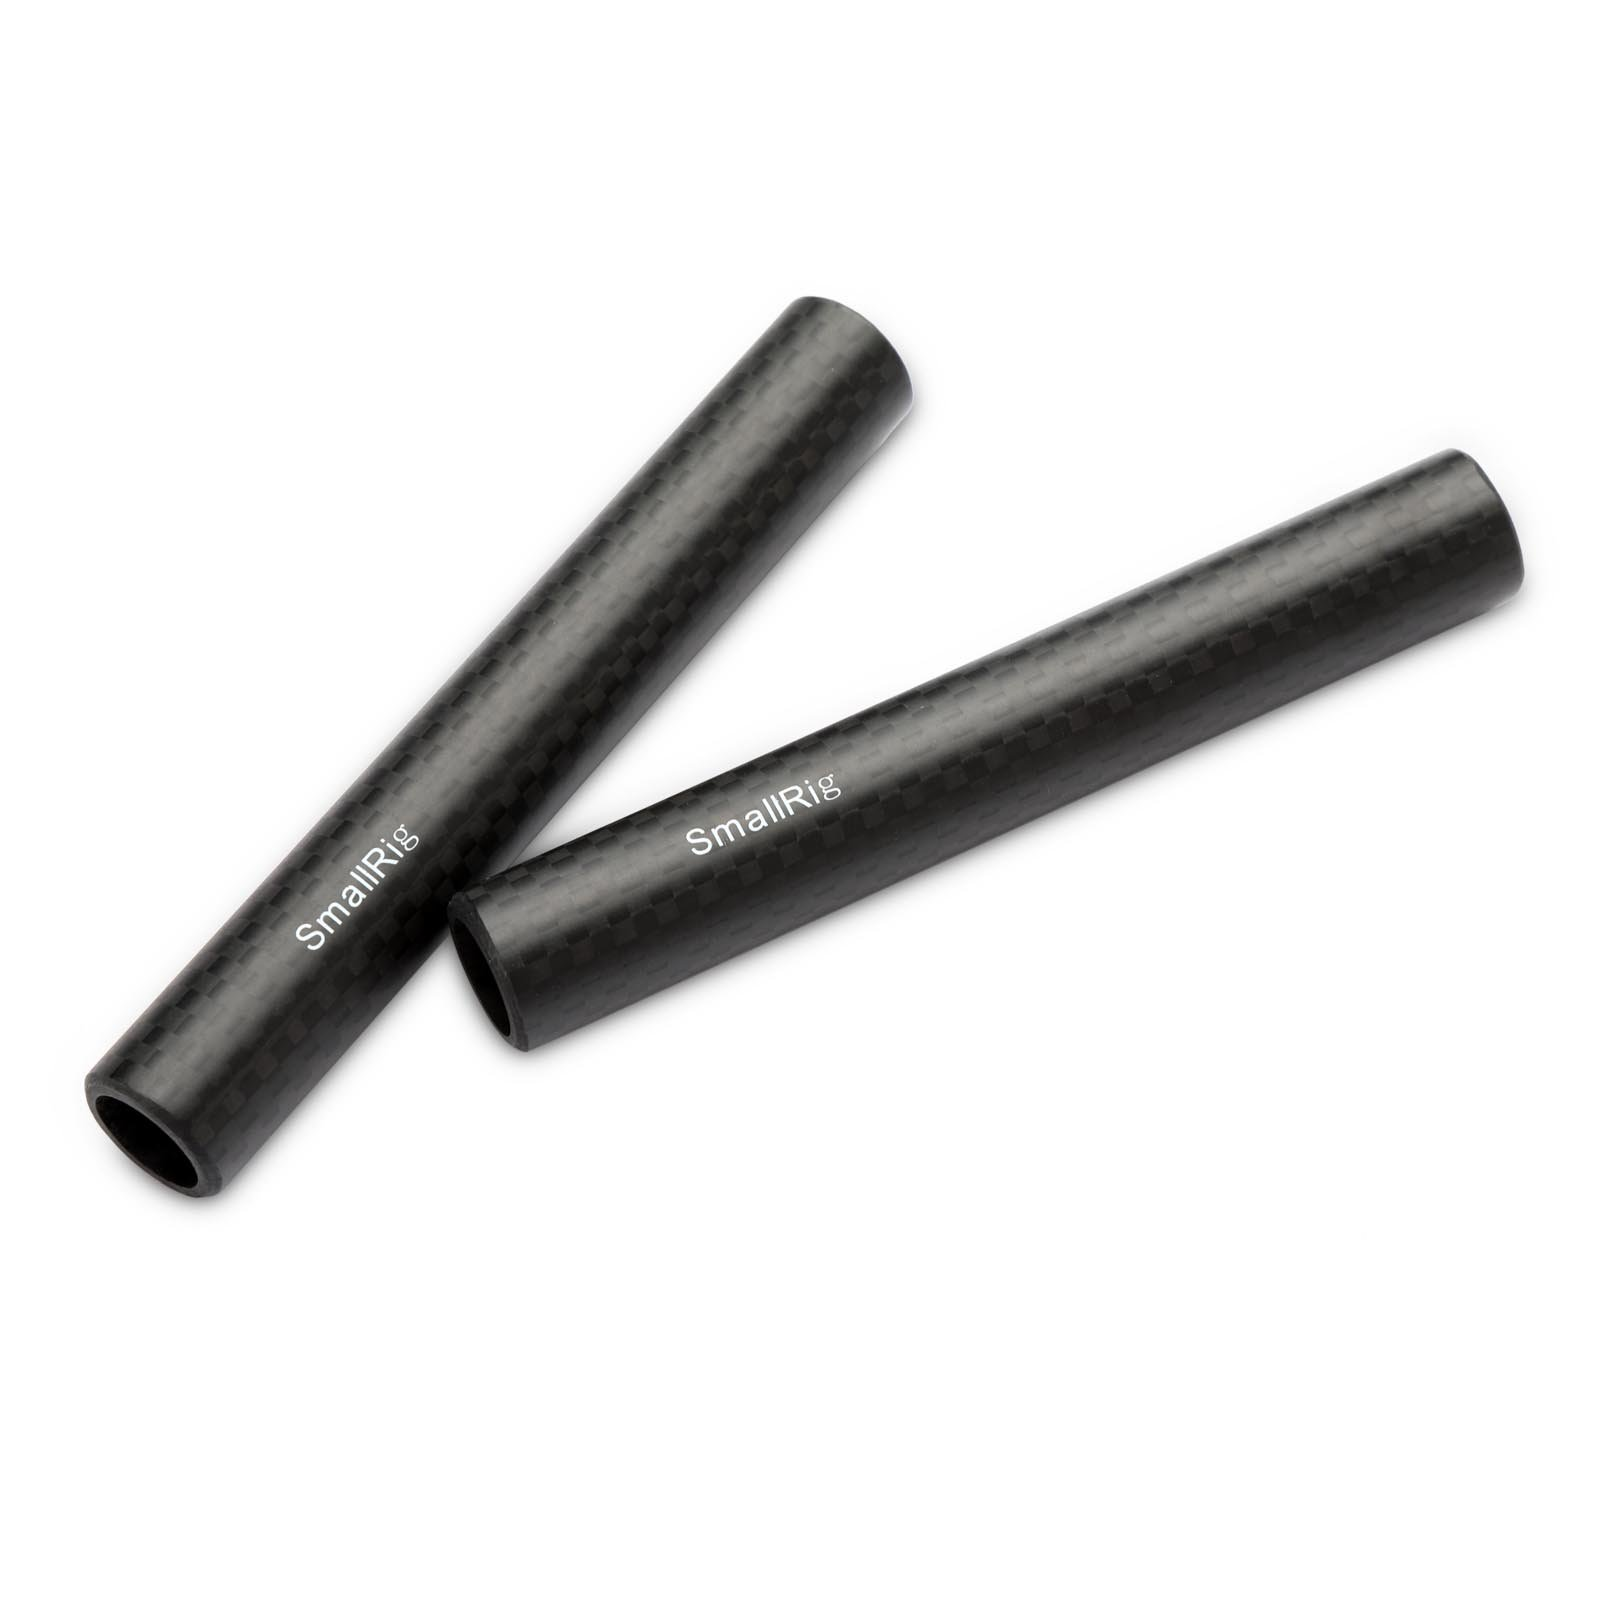 Smallrig 1871 15mm Carbon Fiber Rods (4 Inch) for 15mm Ra...